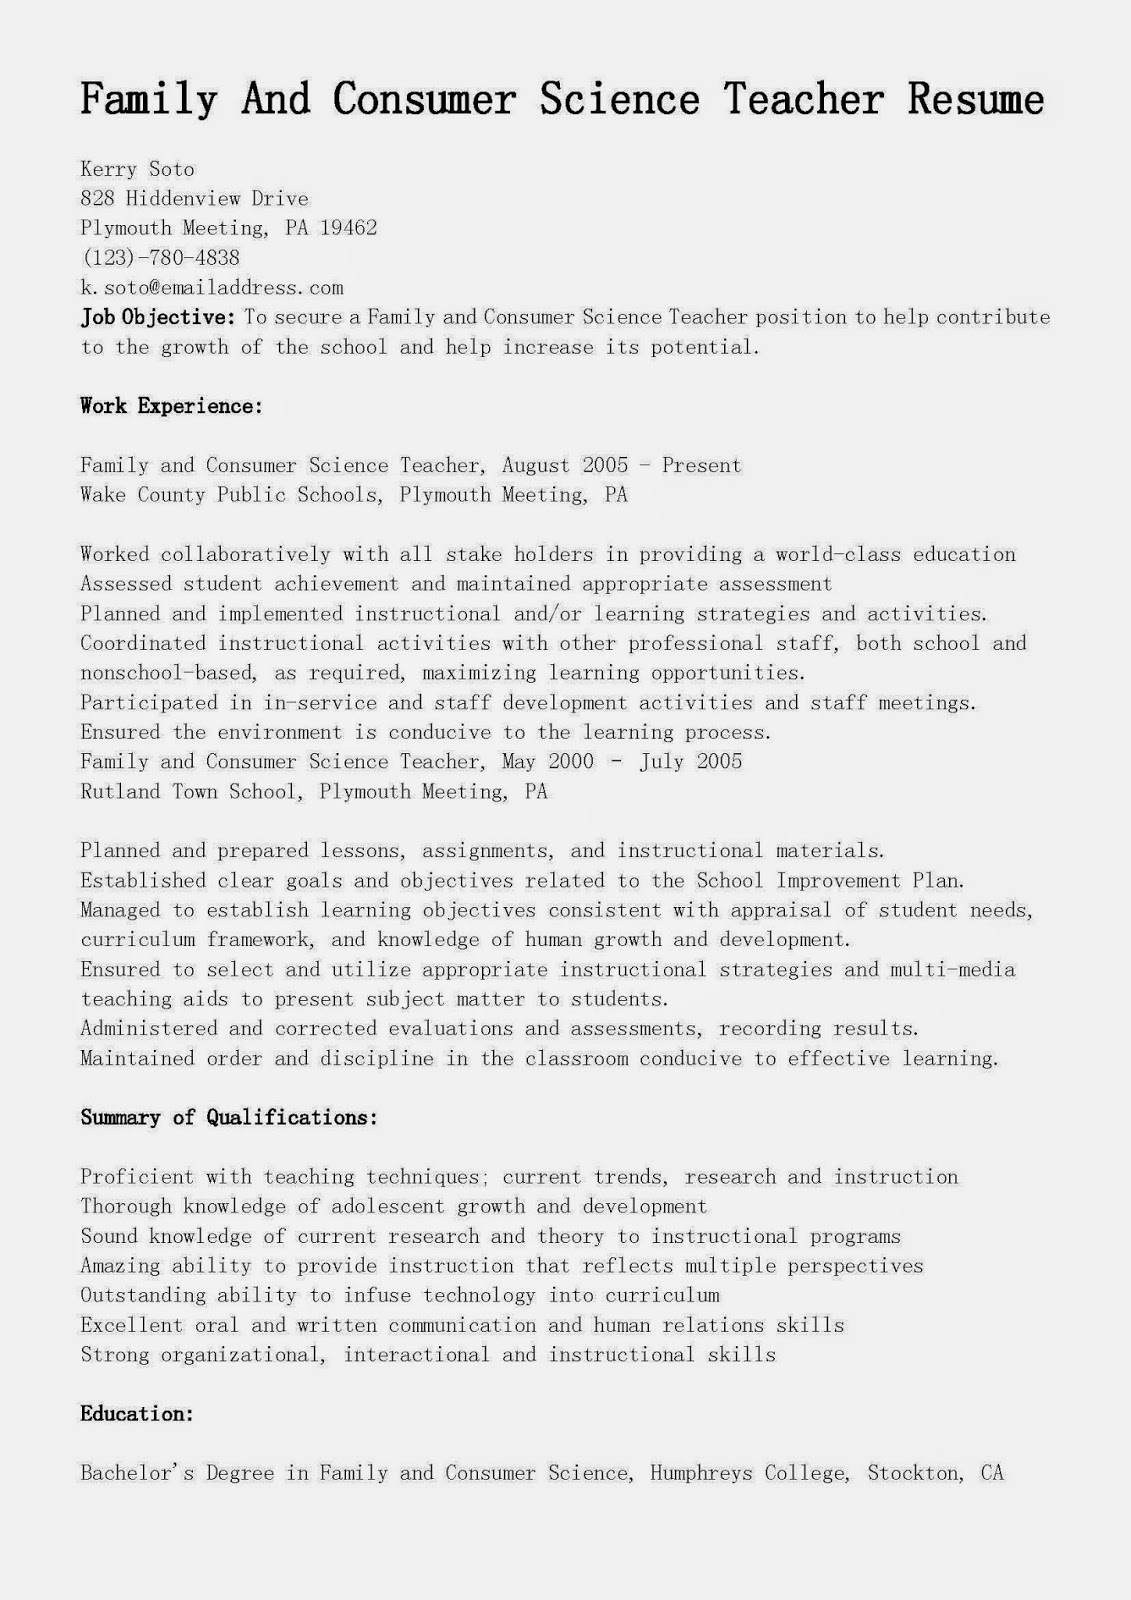 resume samples  family and consumer science teacher resume